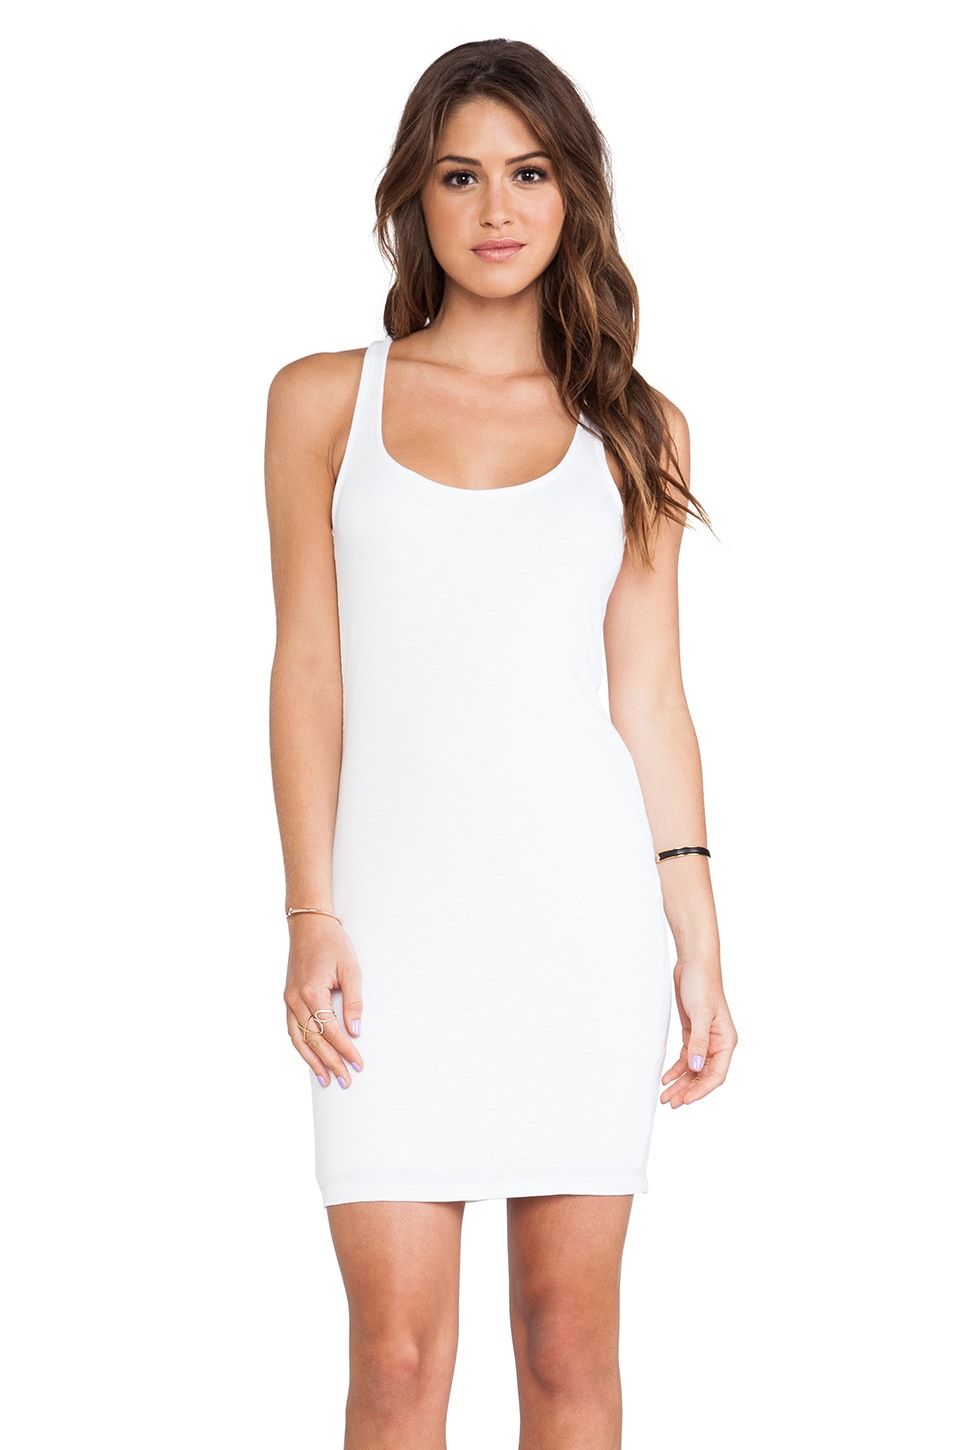 dolan Racerback Tank Dress in Ivory